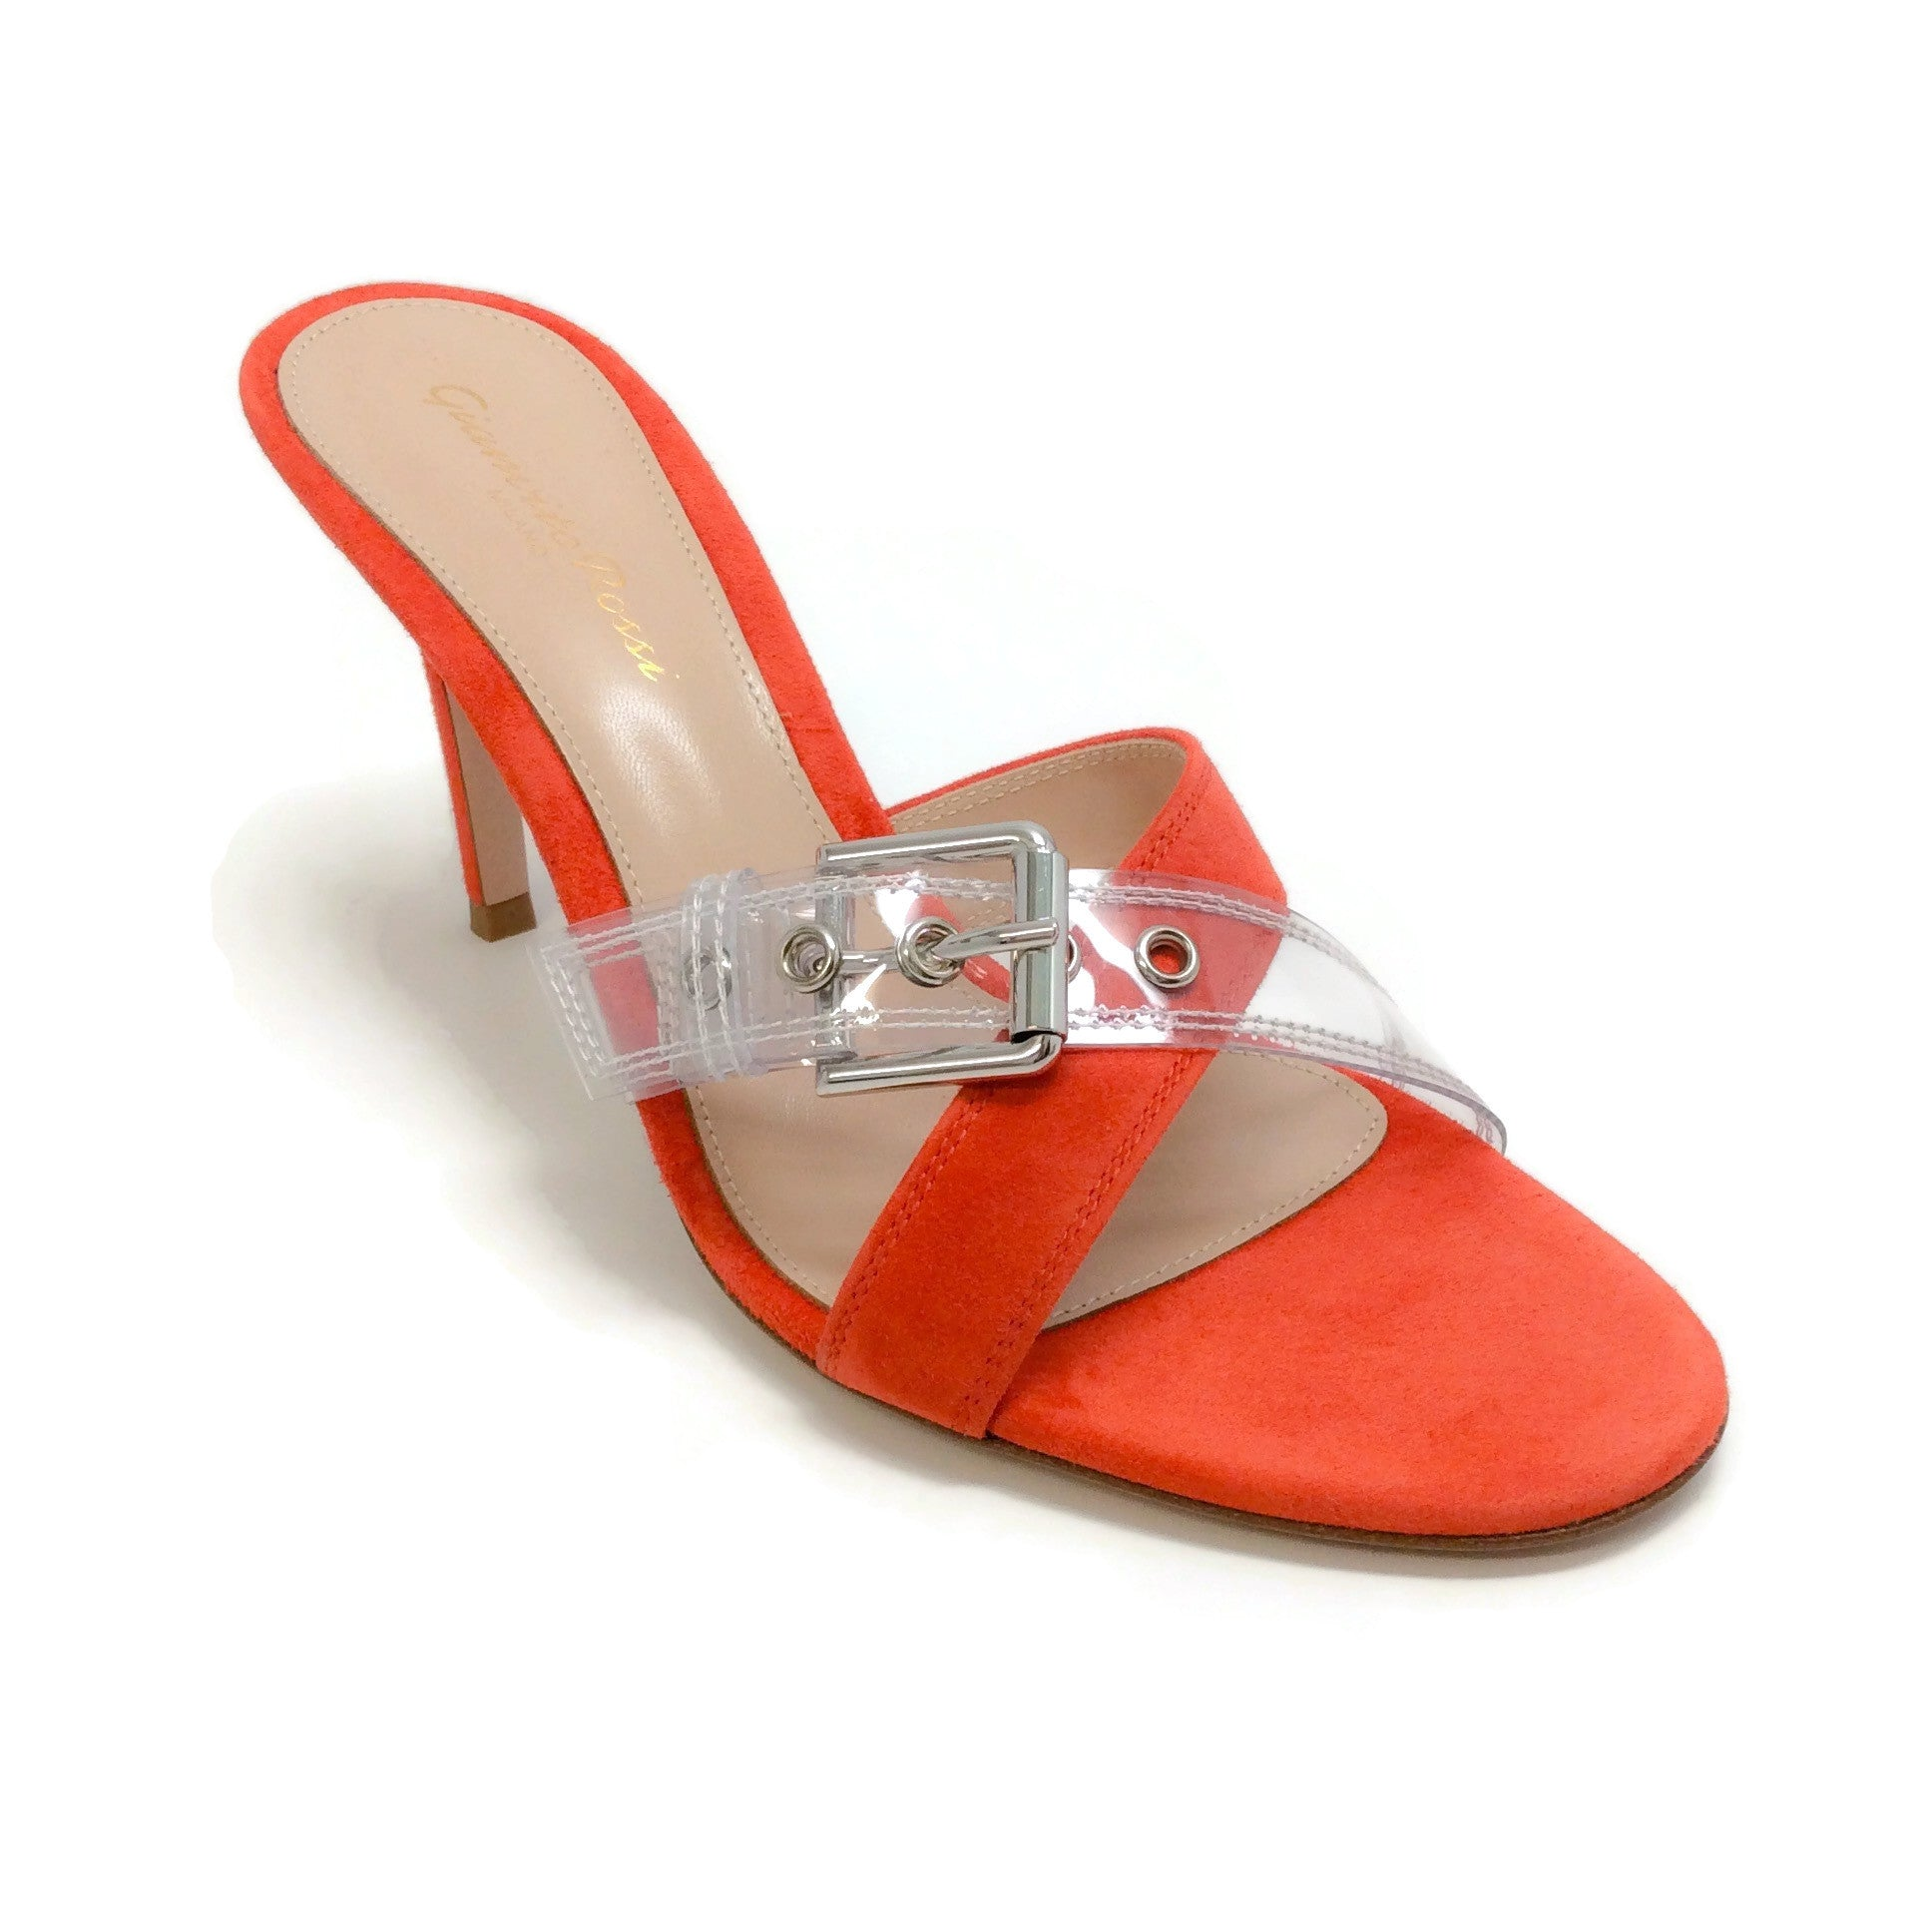 Gianvito Rossi Orange / Lucite Lilas Sandals